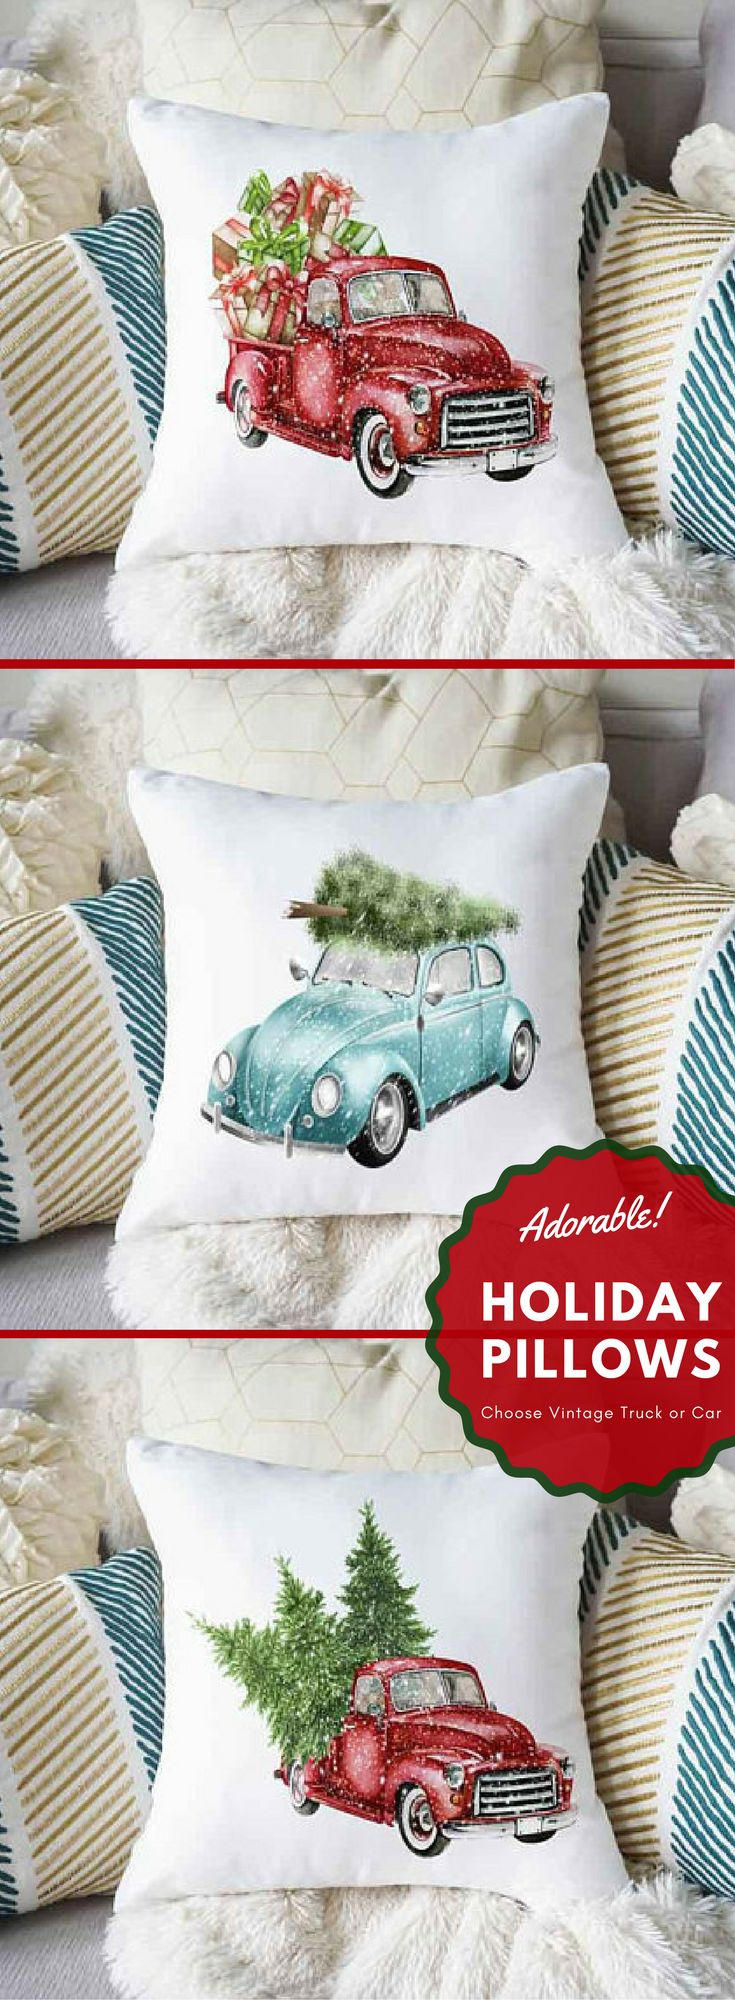 Christmas Pillow, Car Pillow, Vintage Truck Pillow, Red Truck Pillow, Farmhouse Pillow, Farmhouse Christmas Pillow, Tree Pillow, Blue Car Love this rustic vintage look for the Holidays. Perfect way to add a touch of Christmas to your home decor. #Pillow #Redtruck #Bluecar #Vintage #Rustic #affiliate